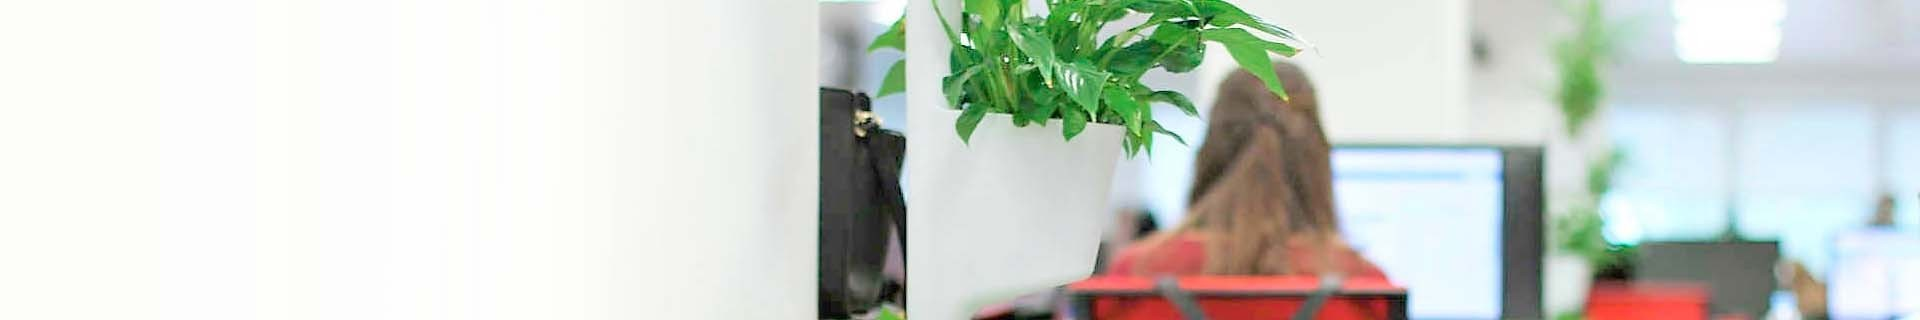 Office plants online | Indoor plants delivered | CitySens